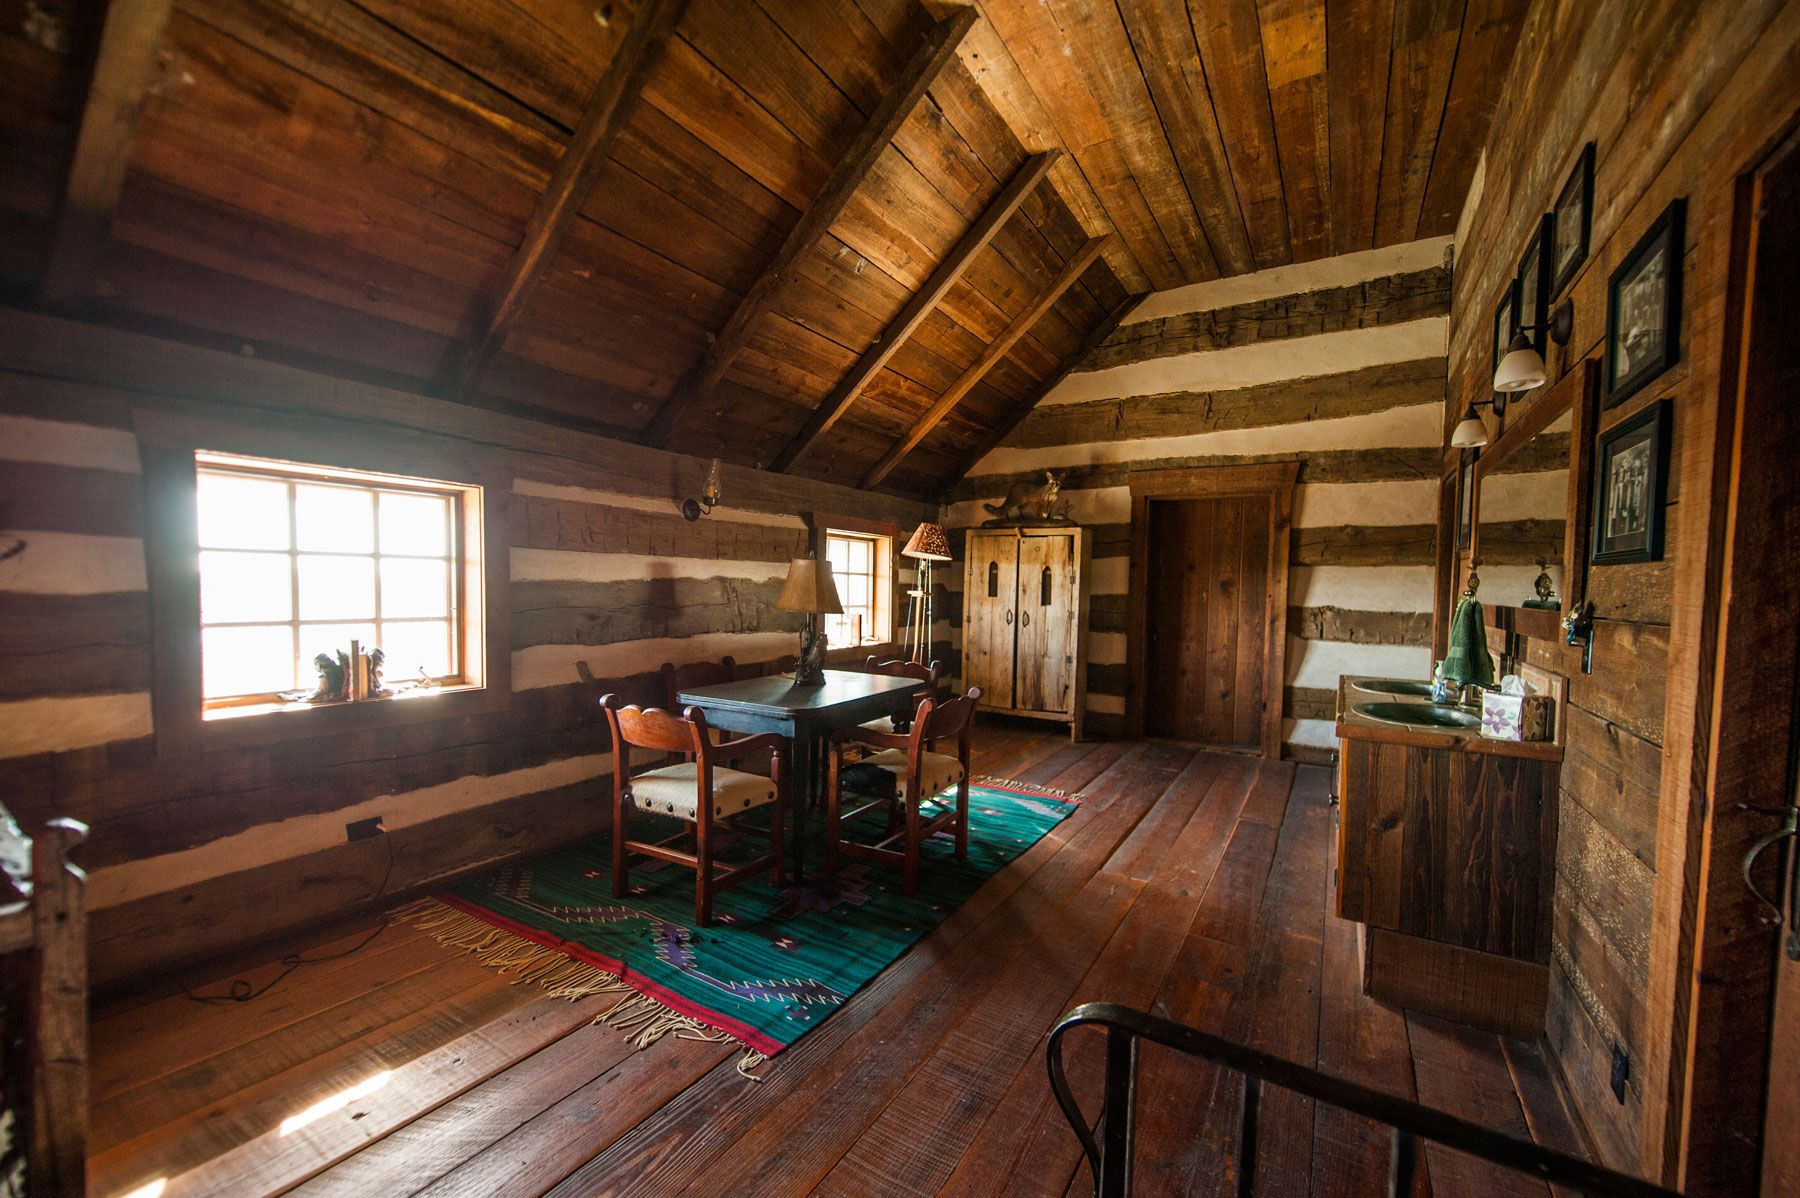 Log home interior ideas  best barn home ideas on internet  cabin log cabins and log